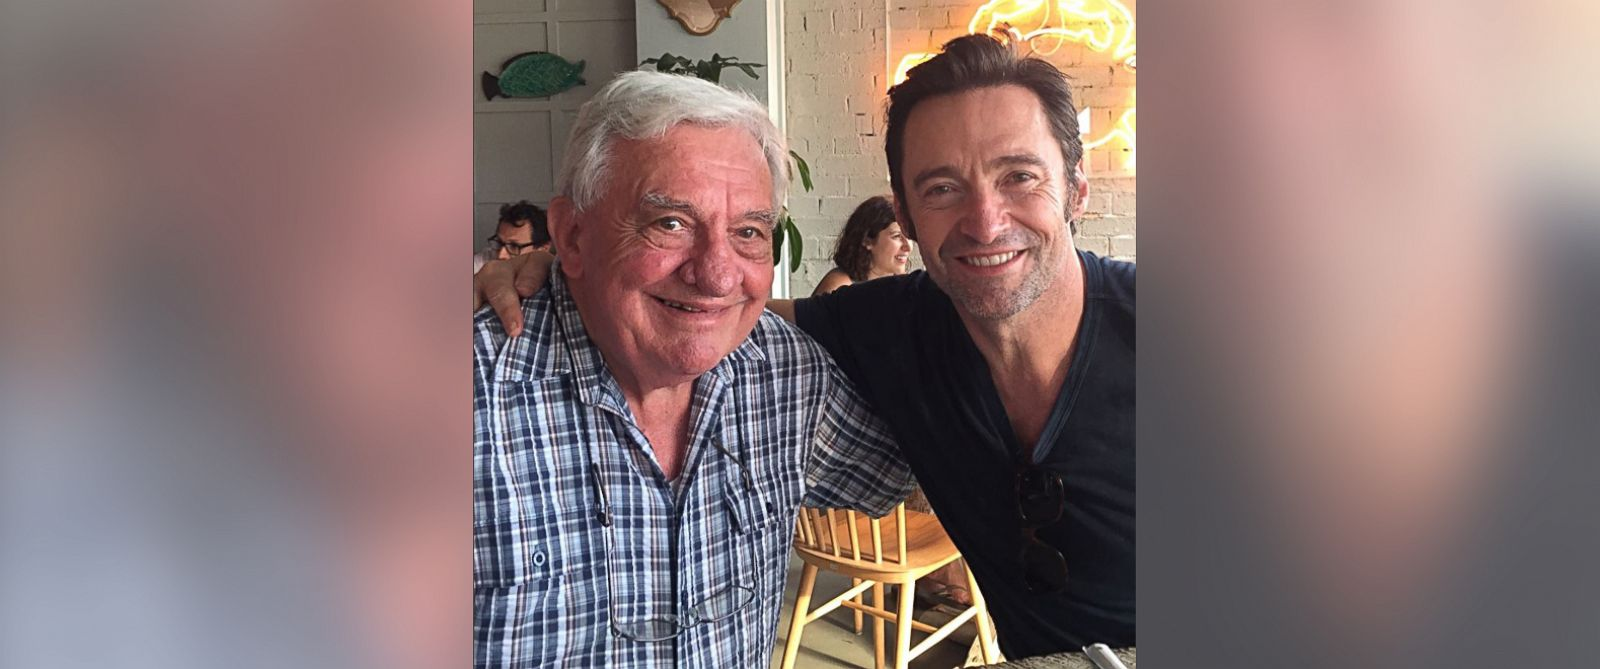 """PHOTO: Hugh Jackman tweeted this photo on June 18, 2017 with the caption, """"Happy Fathers Day to all..."""""""